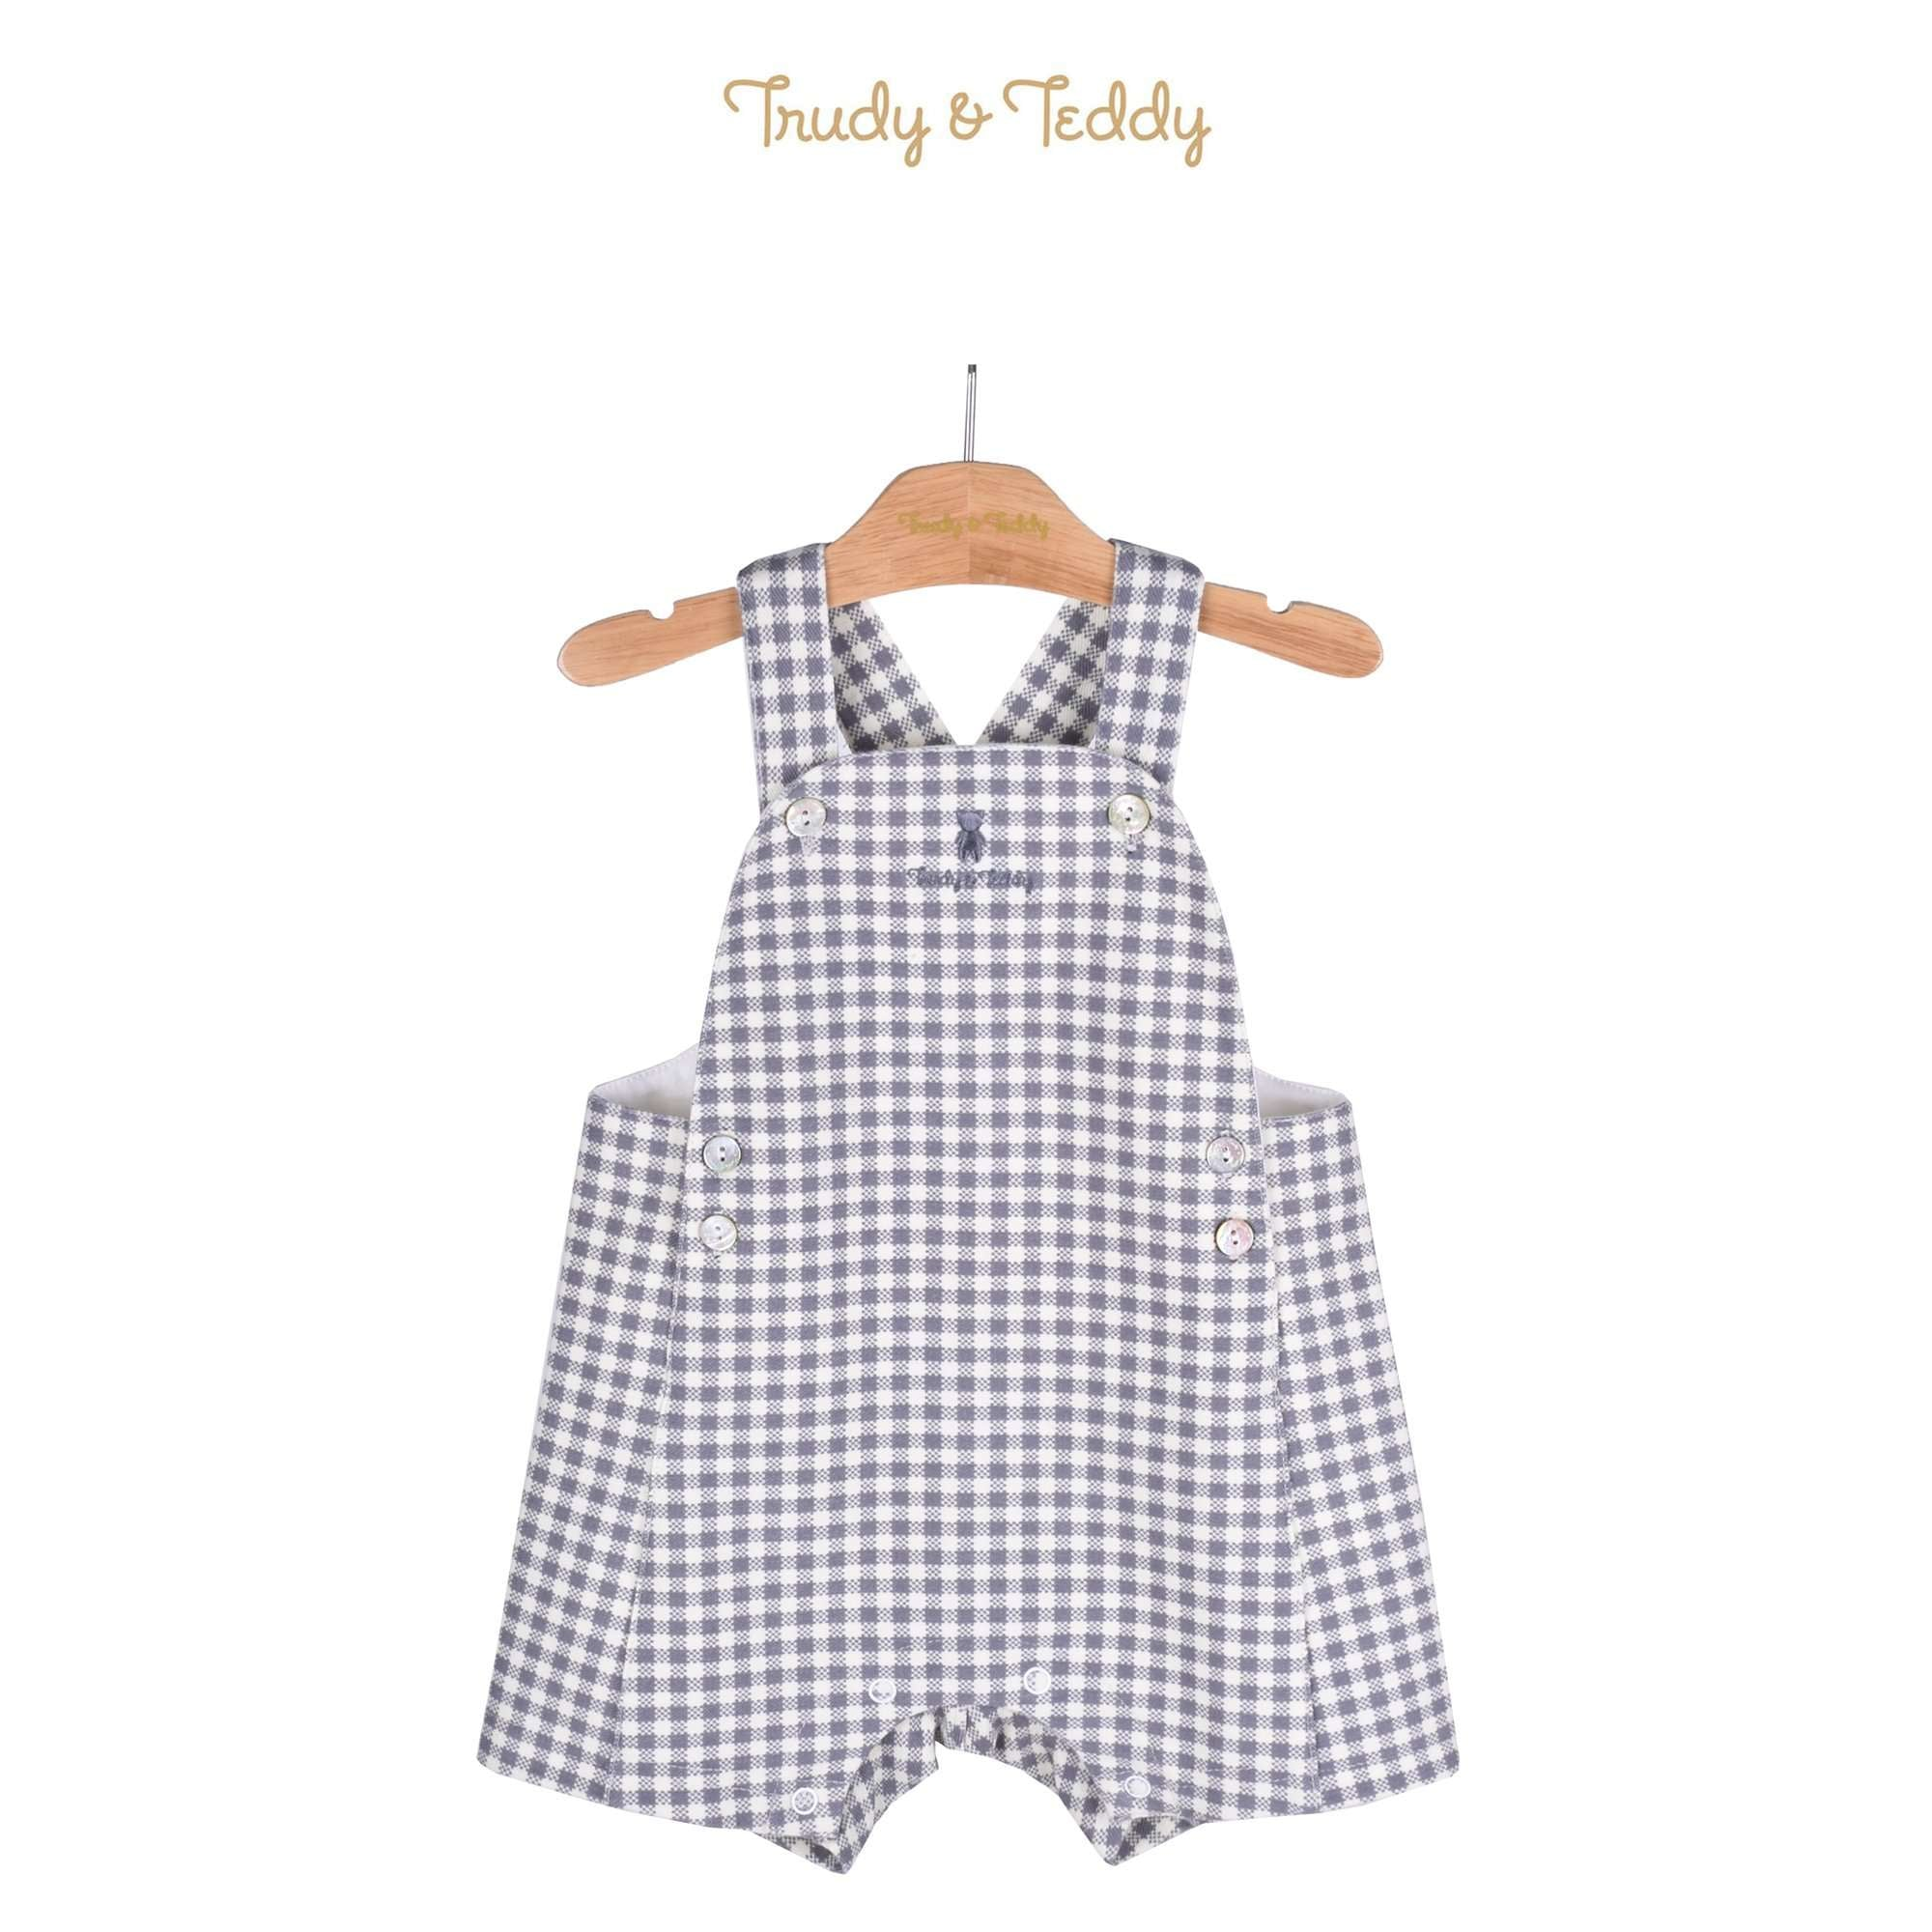 Trudy & Teddy Baby Boy Overall 271 Kids Baby Clothing Baby